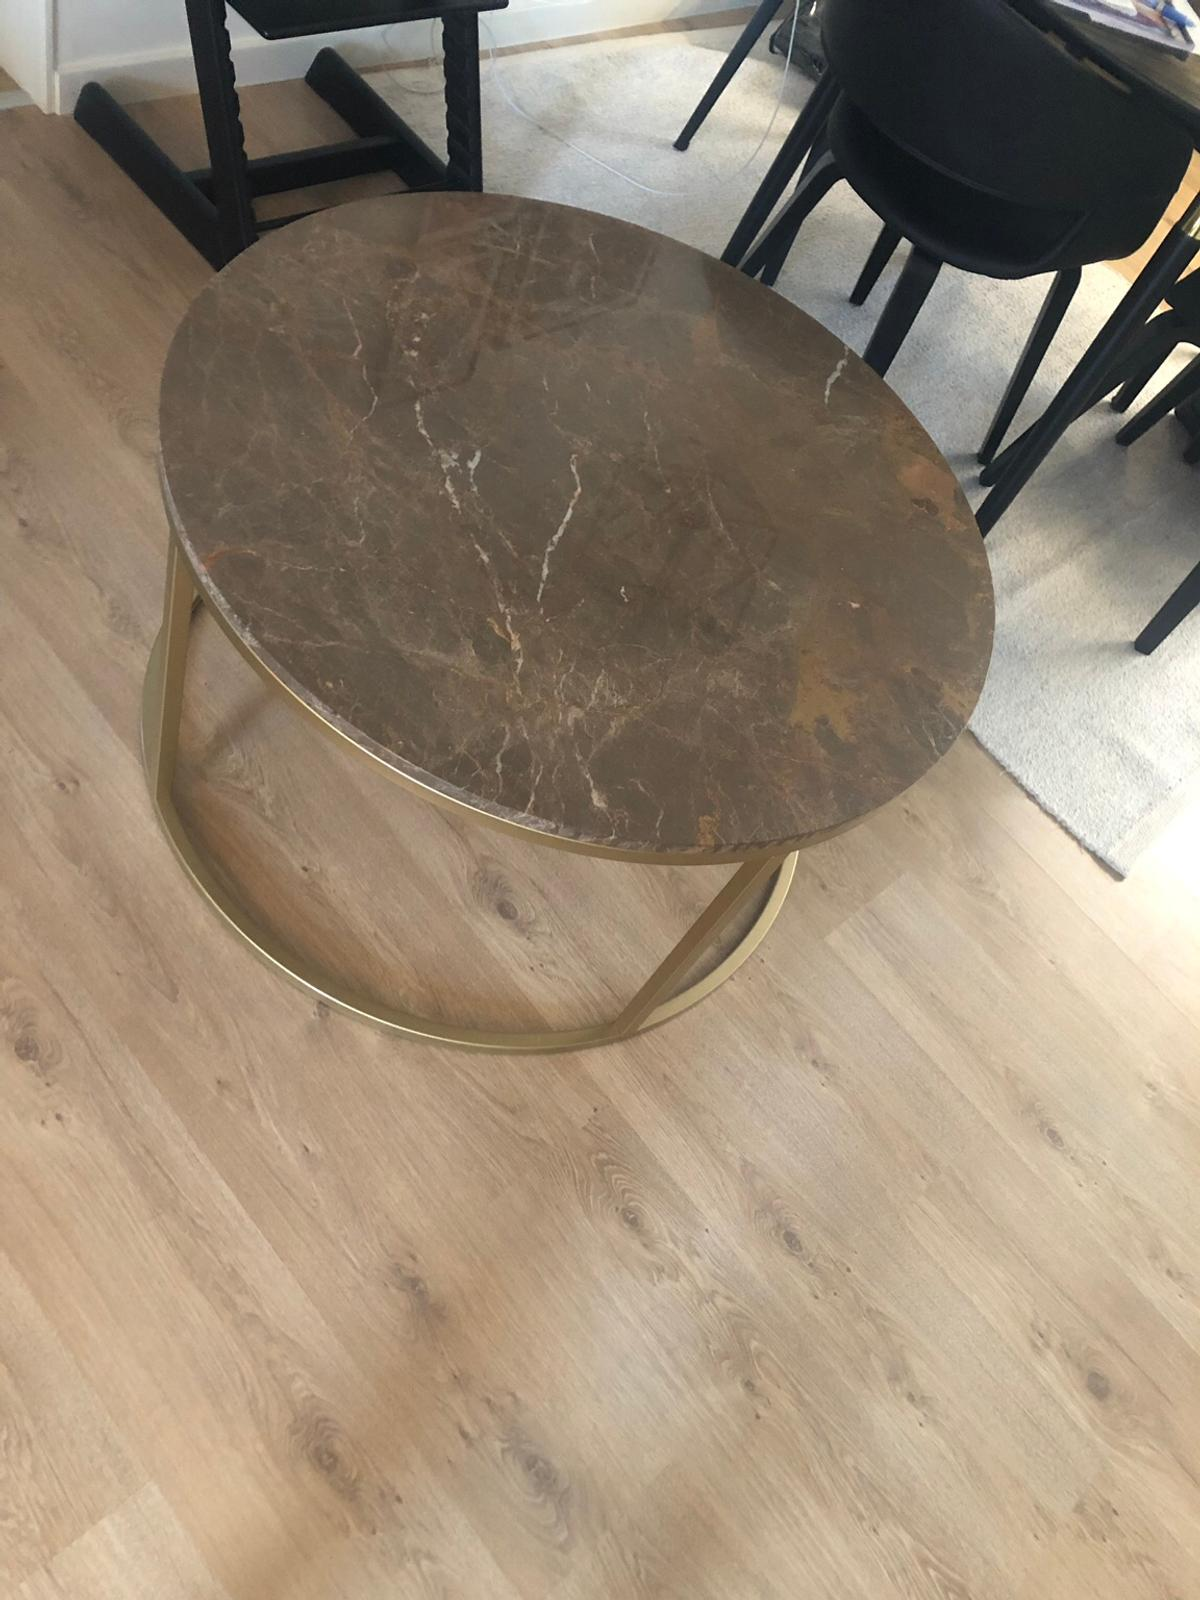 Picture of: Brunt Marmorbord In 19453 Ekeby For Sek 1 200 00 For Sale Shpock